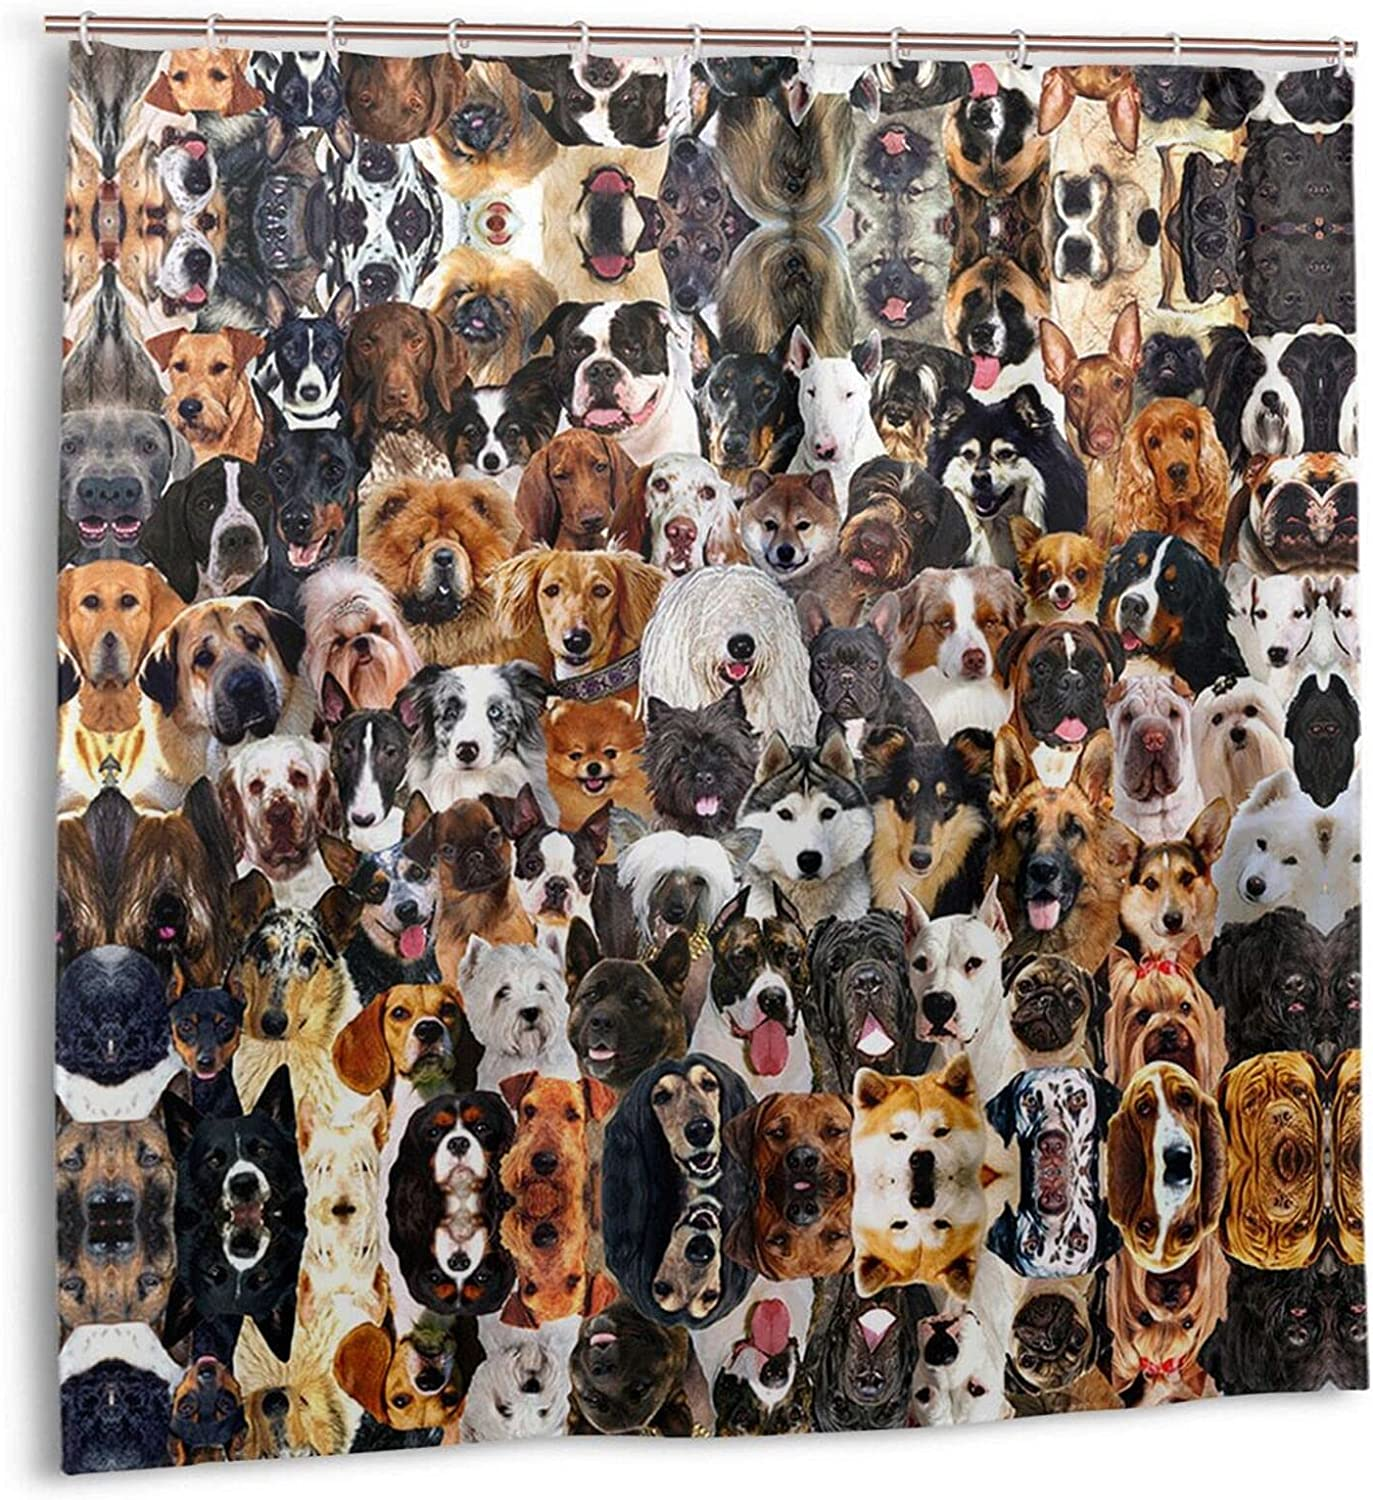 Many Breeds Dogs Bathroom Shower Curtain No Ranking TOP1 Inch 72 X Chemi OFFicial